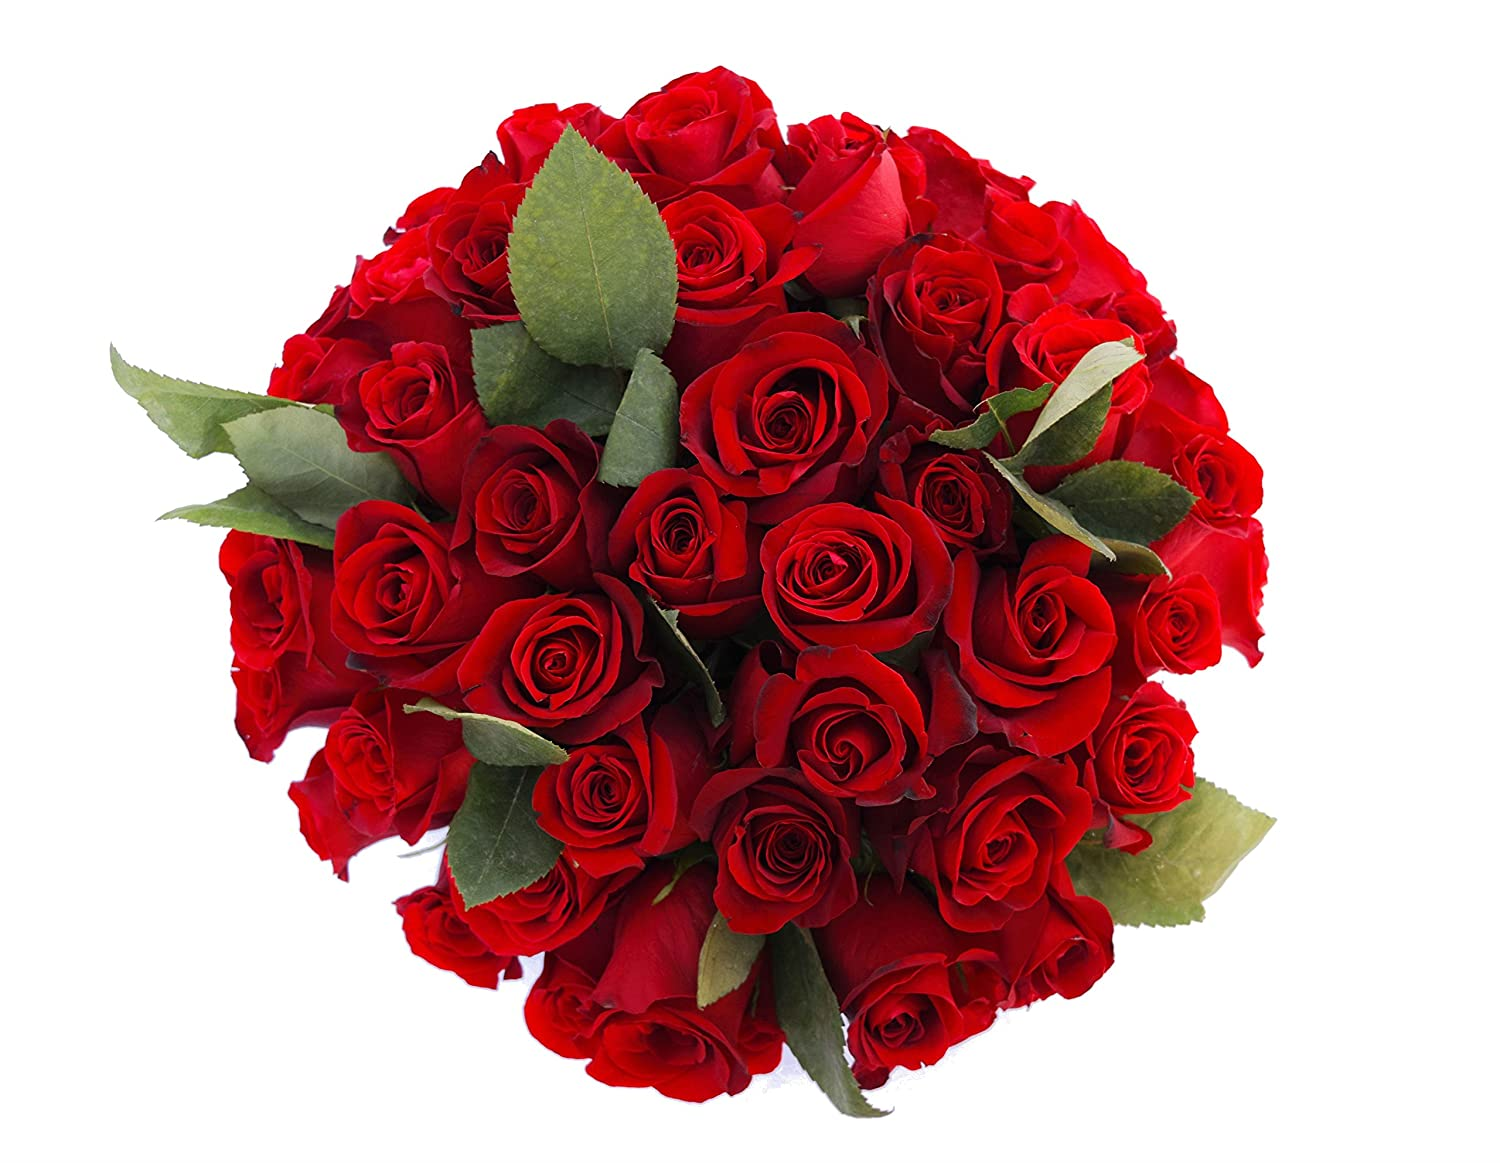 Amazon 50 farm fresh red roses bouquet by justfreshroses amazon 50 farm fresh red roses bouquet by justfreshroses long stem fresh red rose delivery grocery gourmet food izmirmasajfo